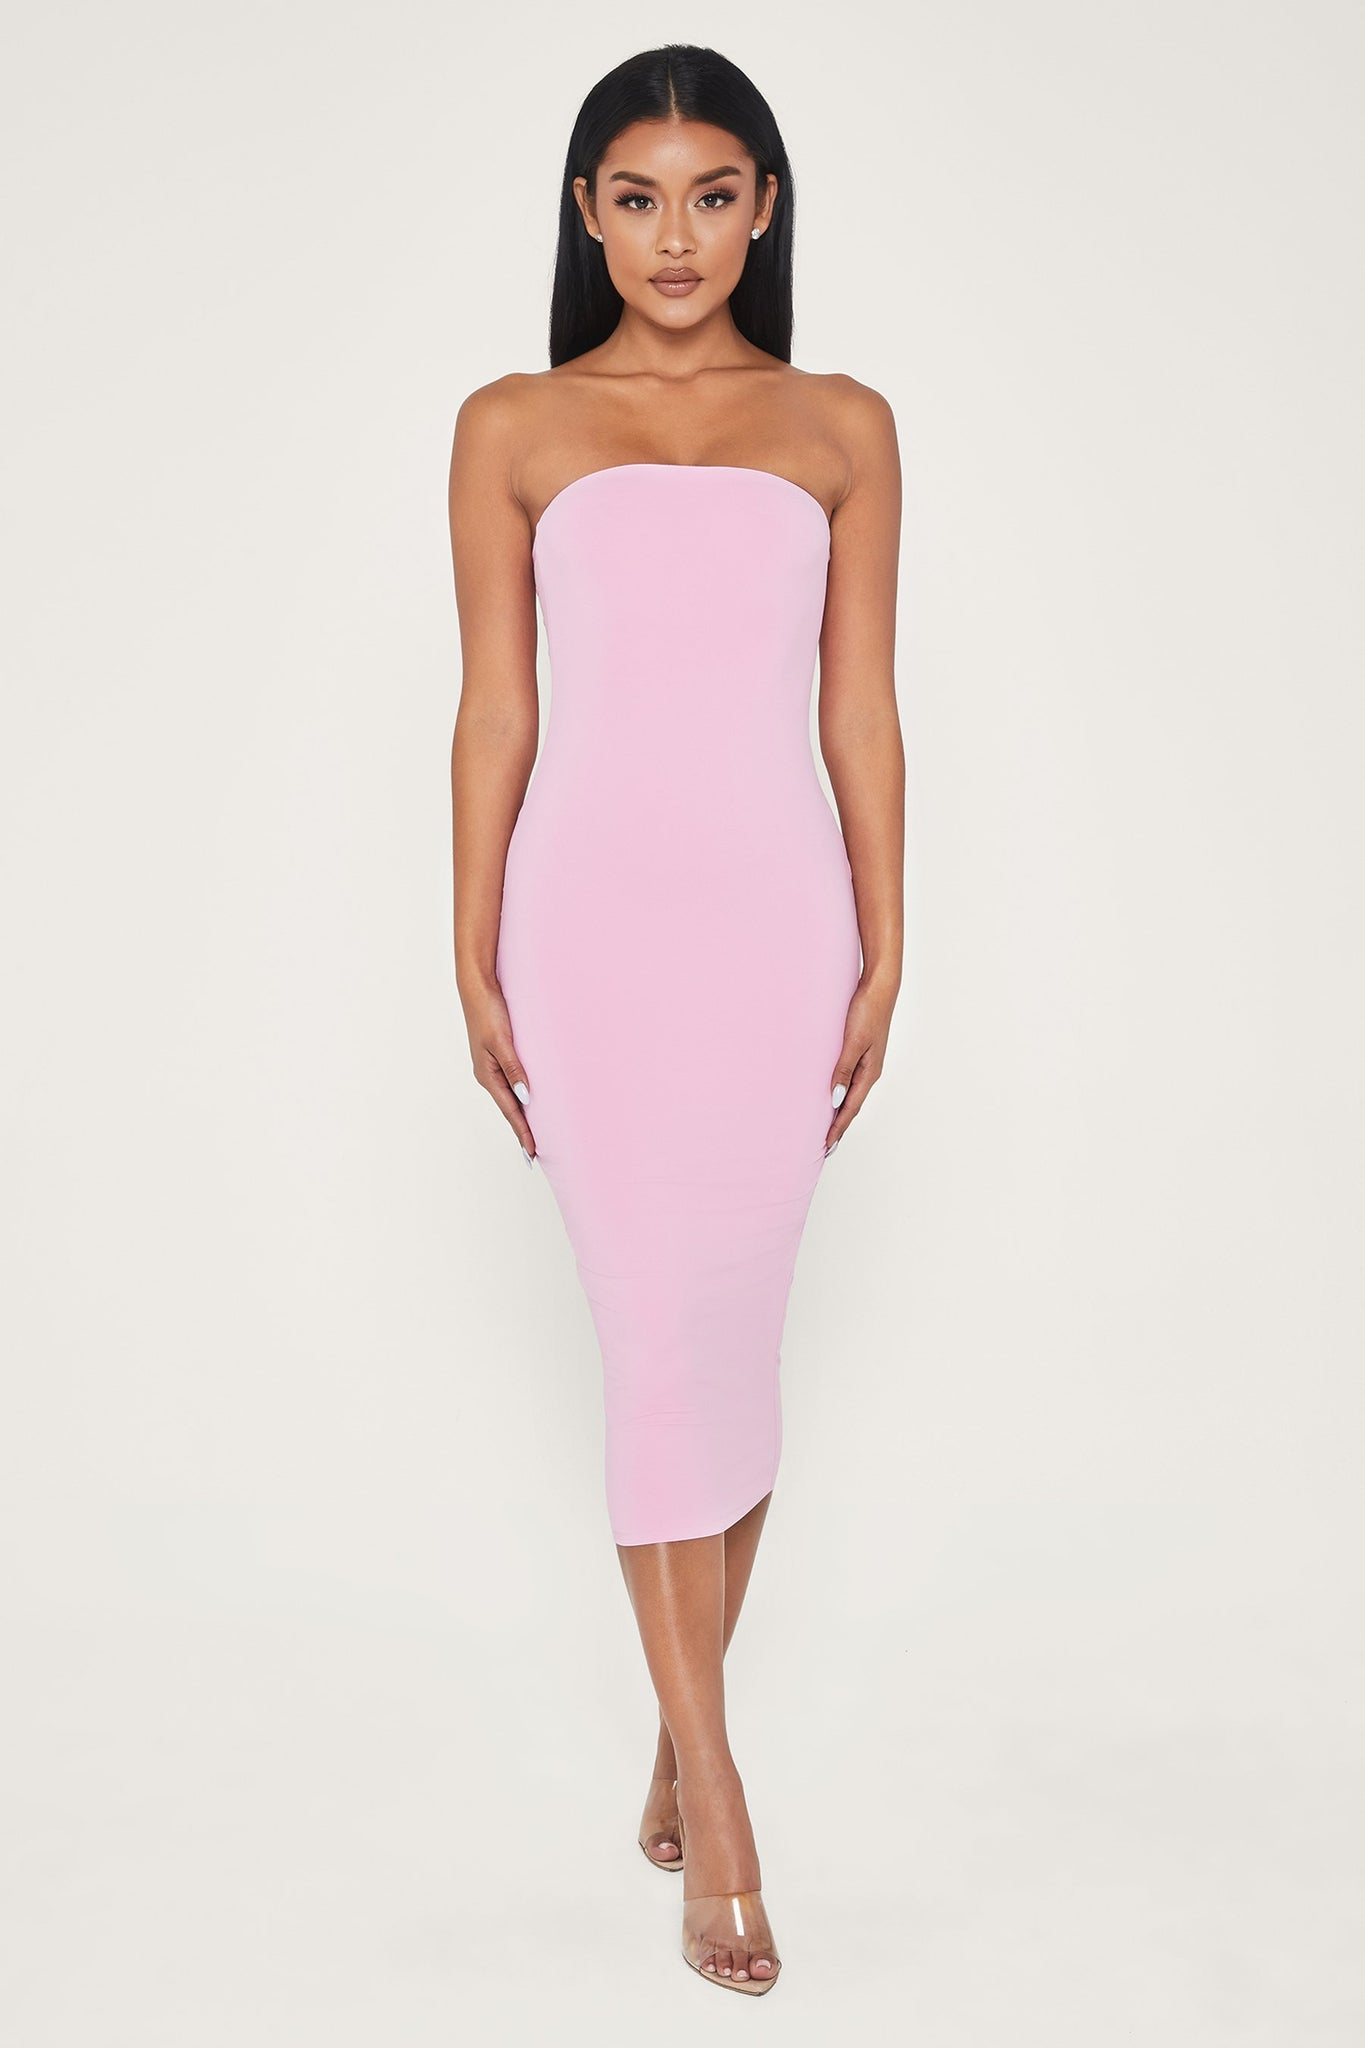 Emilee Strapless Midaxi Dress - Pink - MESHKI